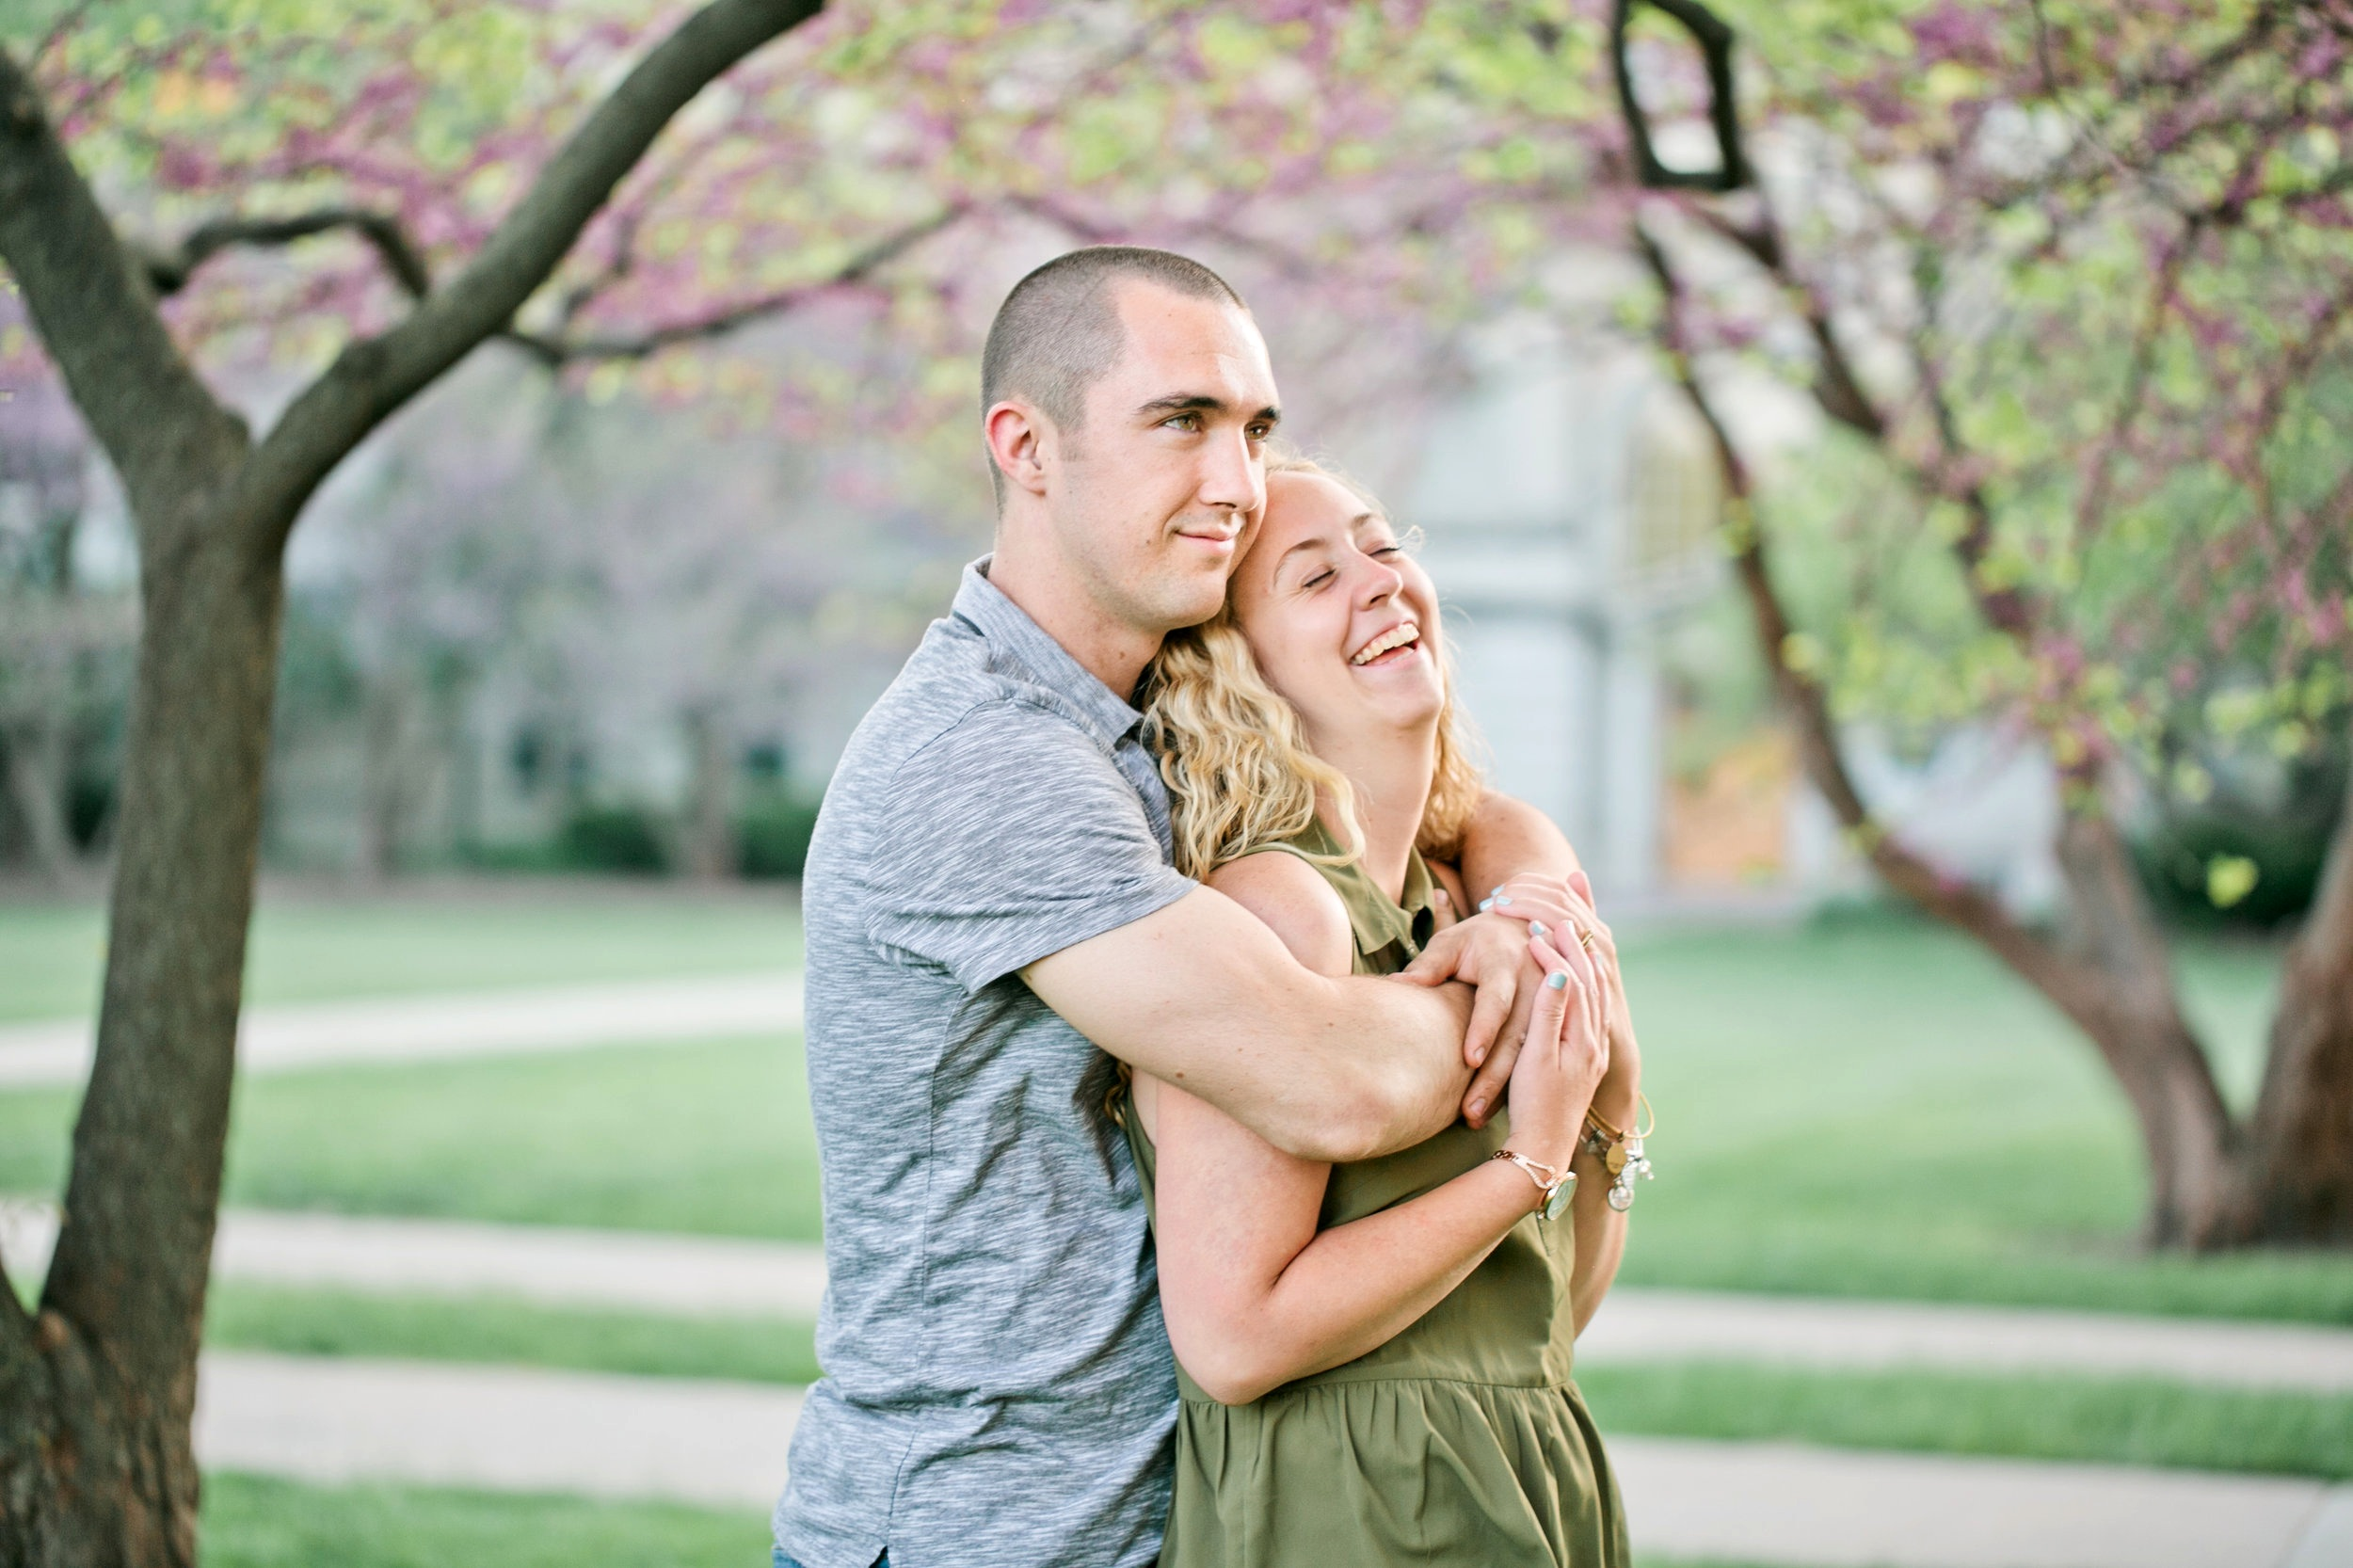 engagement photos in Ames Iowa during spring